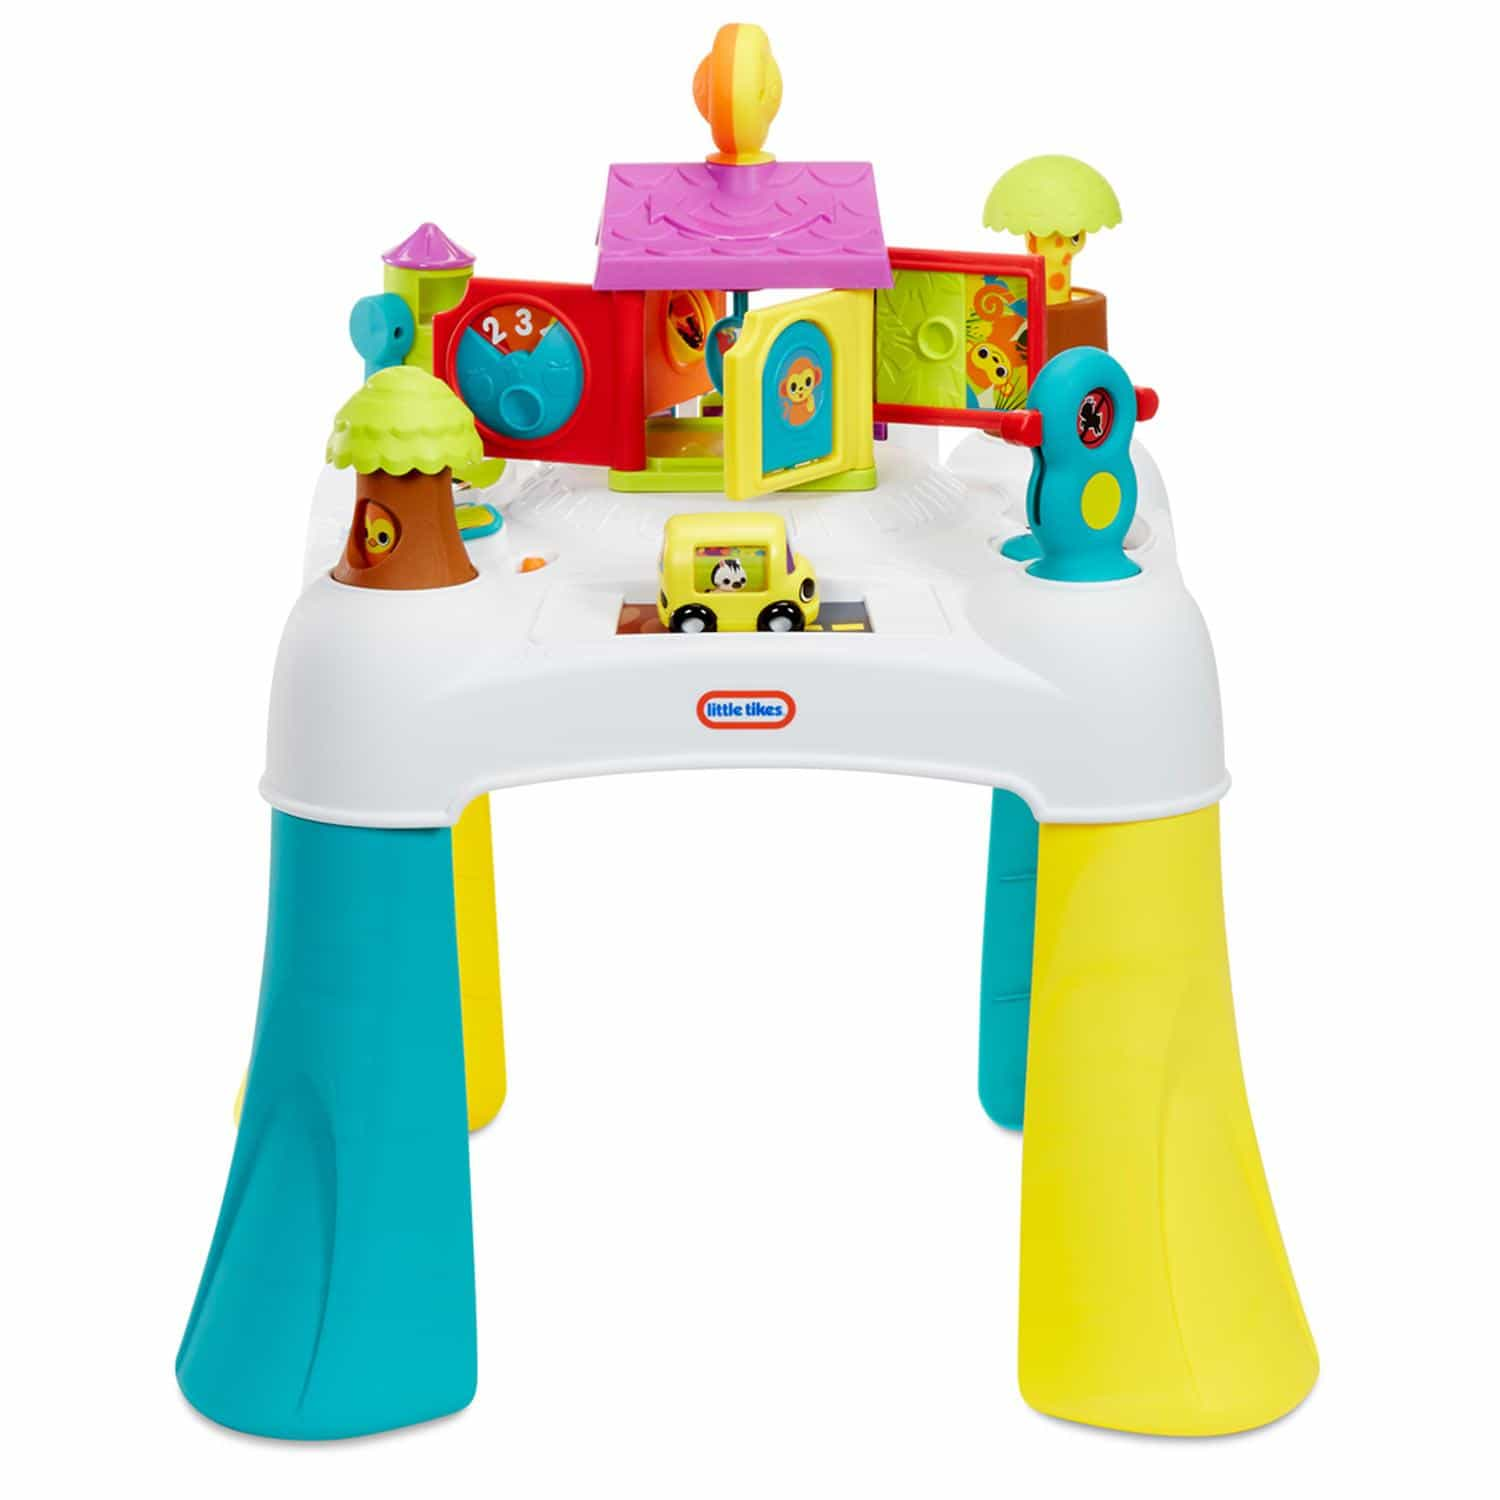 Little Tikes 3-in-1 Switcharoo Activity Table